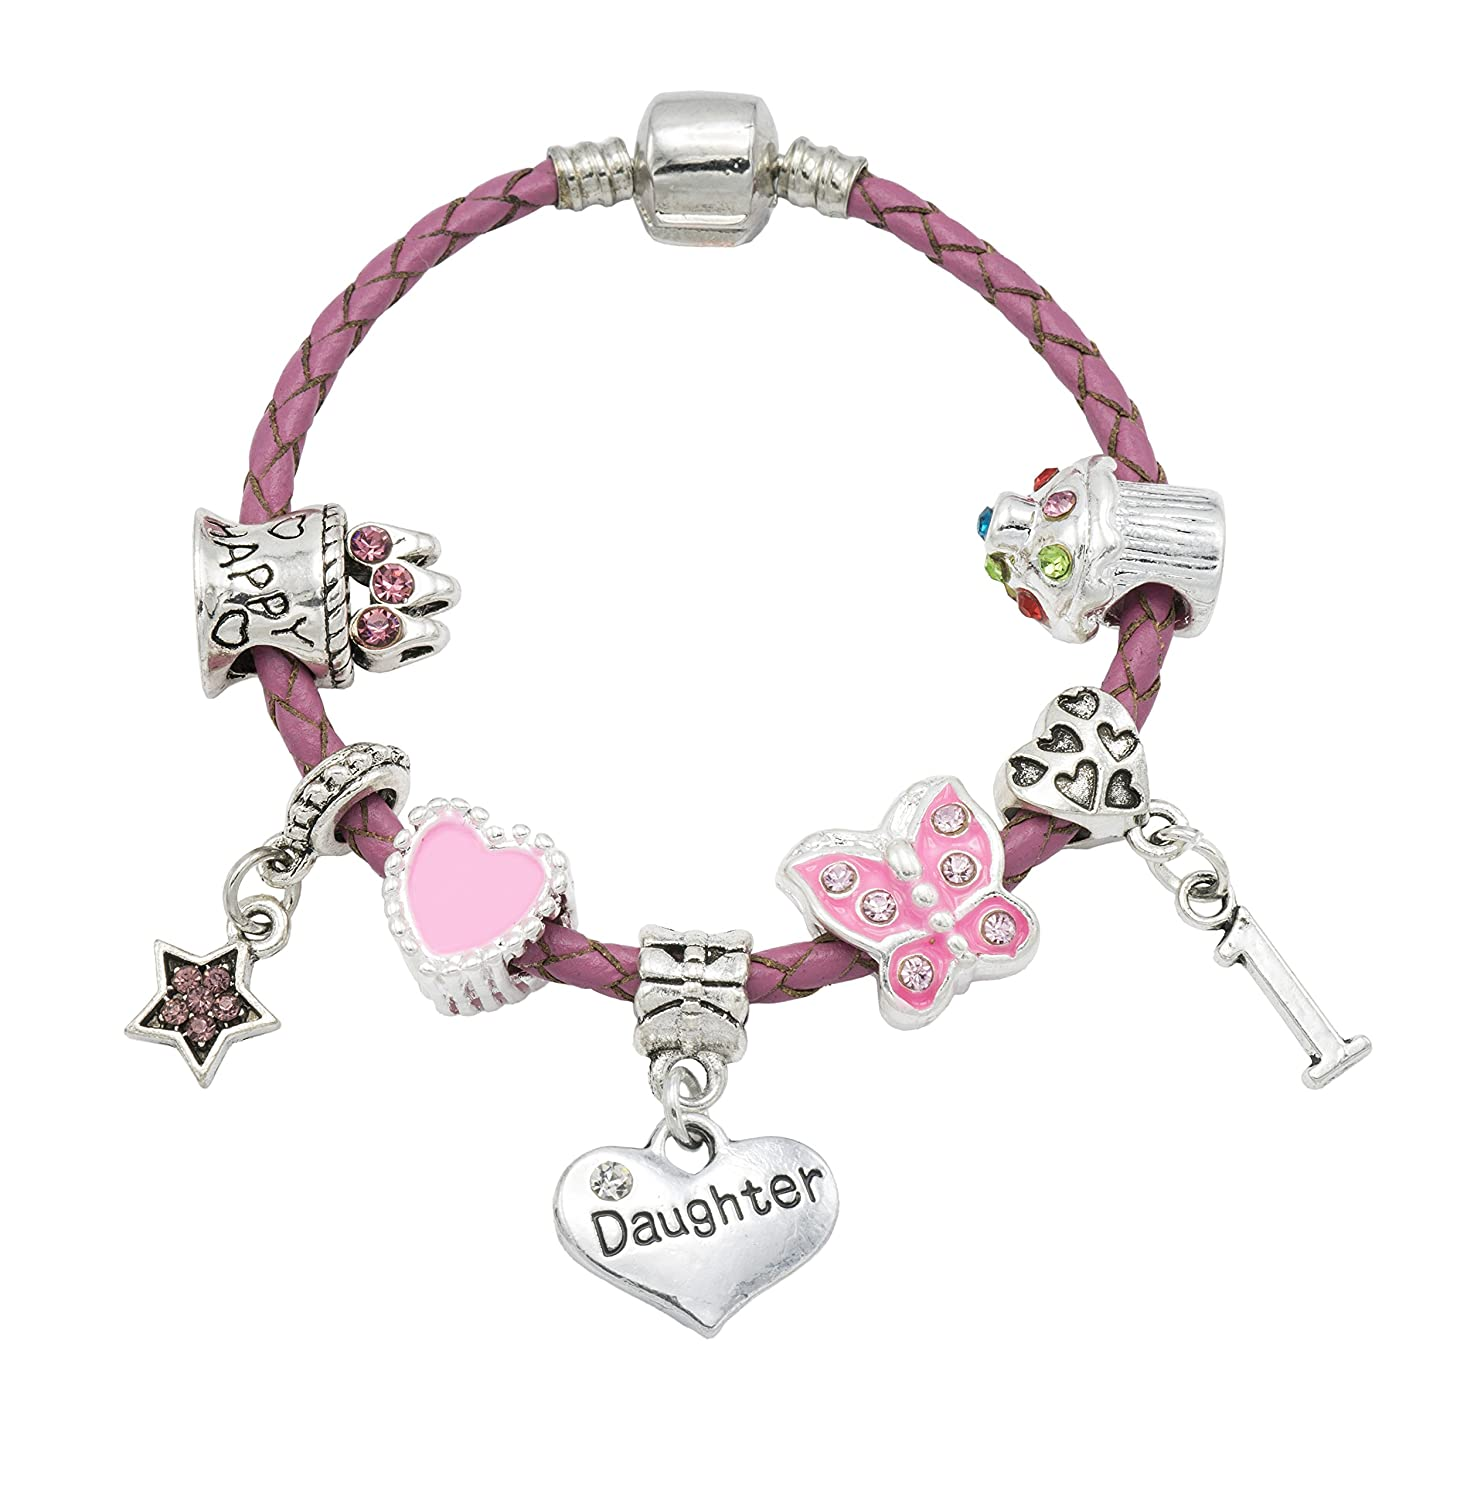 'Daughter' - Happy 1st Birthday Bracelet For Girls with Gift Box - Girls Jewellery Jewellery Hut BRDAUGHT1-15